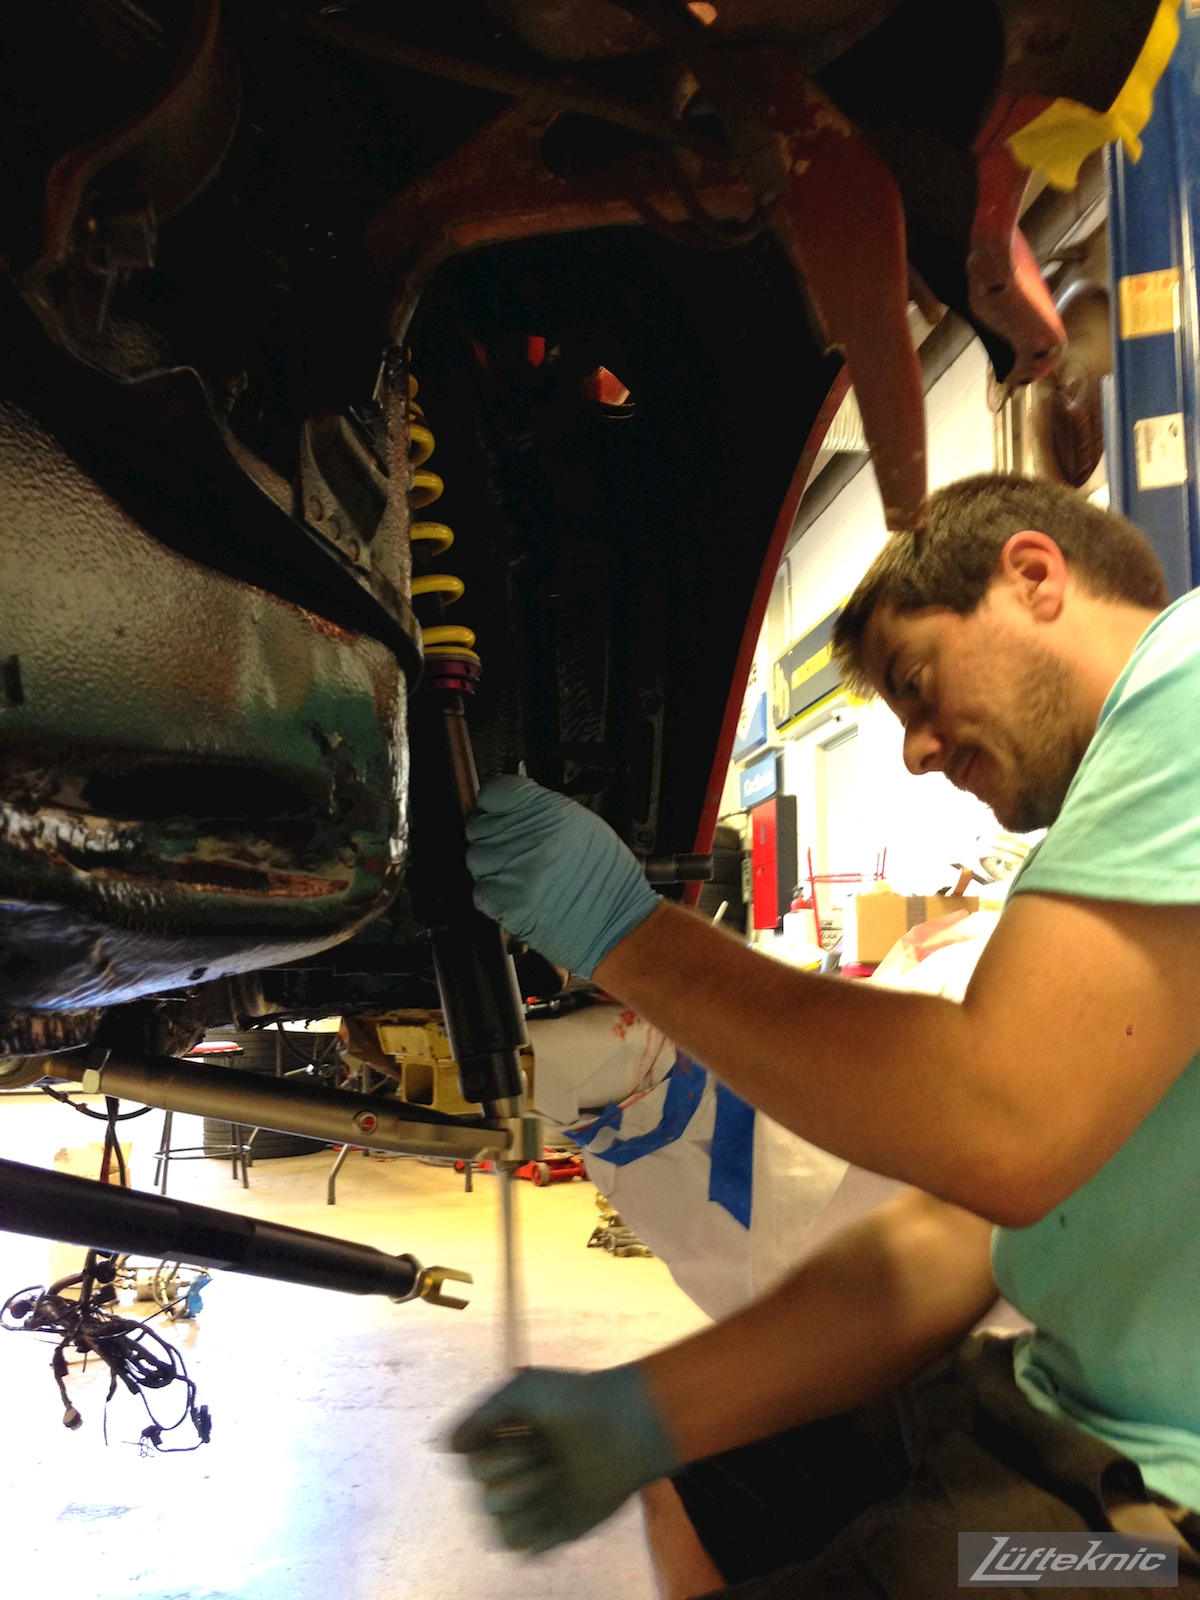 A Lüfteknic employee works on the #projectstuka Porsche 930 Turbo suspension